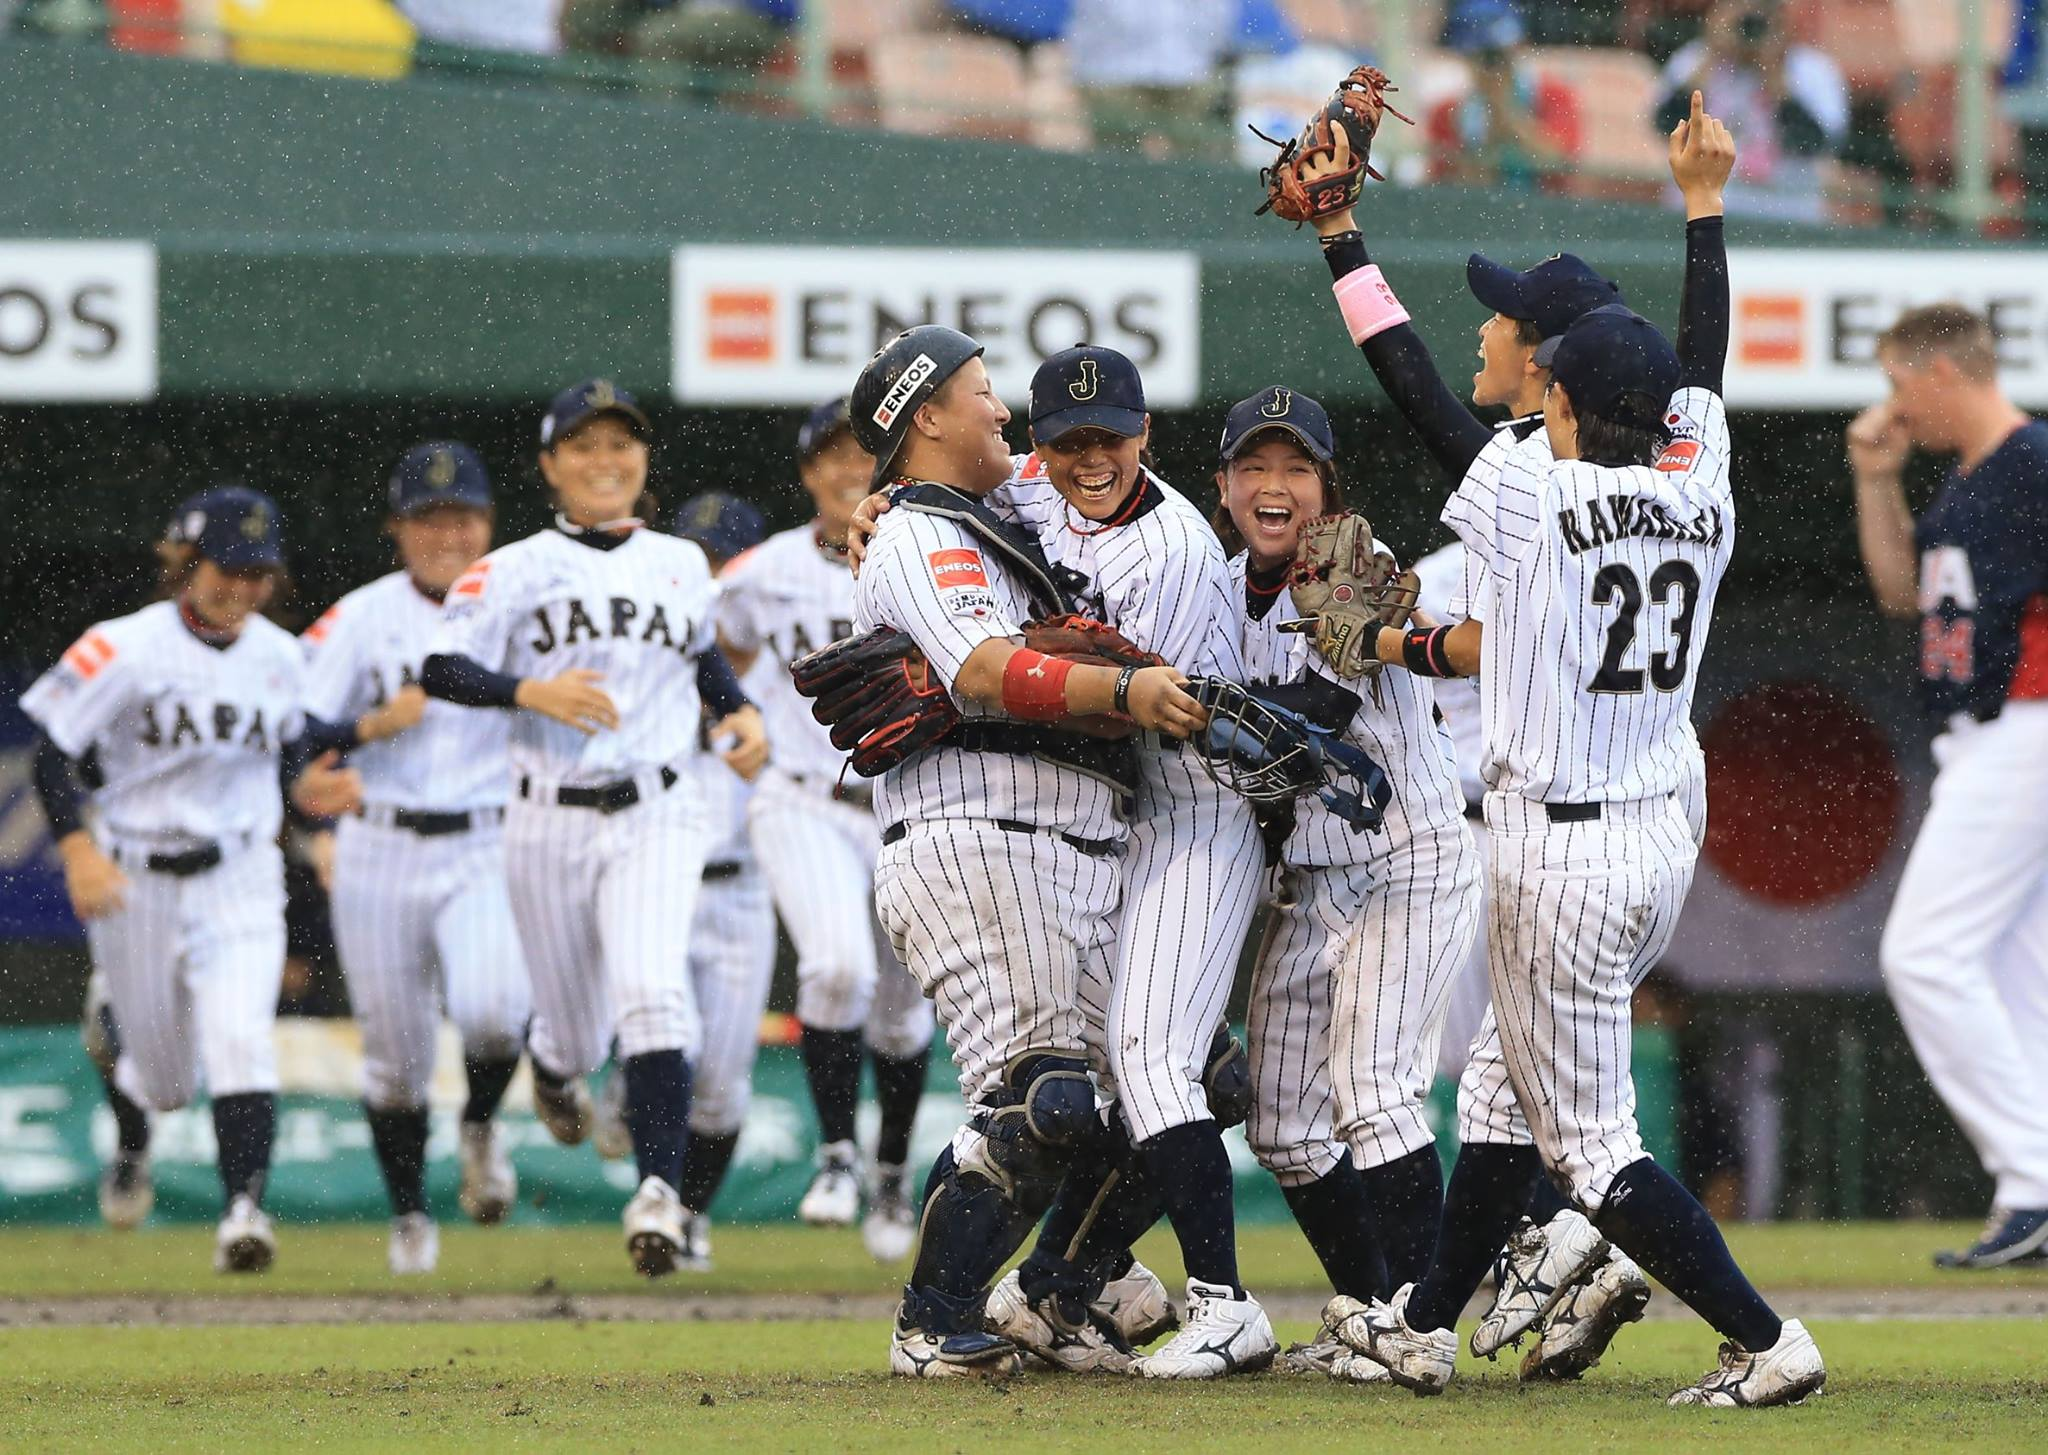 Public support for baseball and softball's inclusion at Tokyo 2020 is growing claims ©WBSC